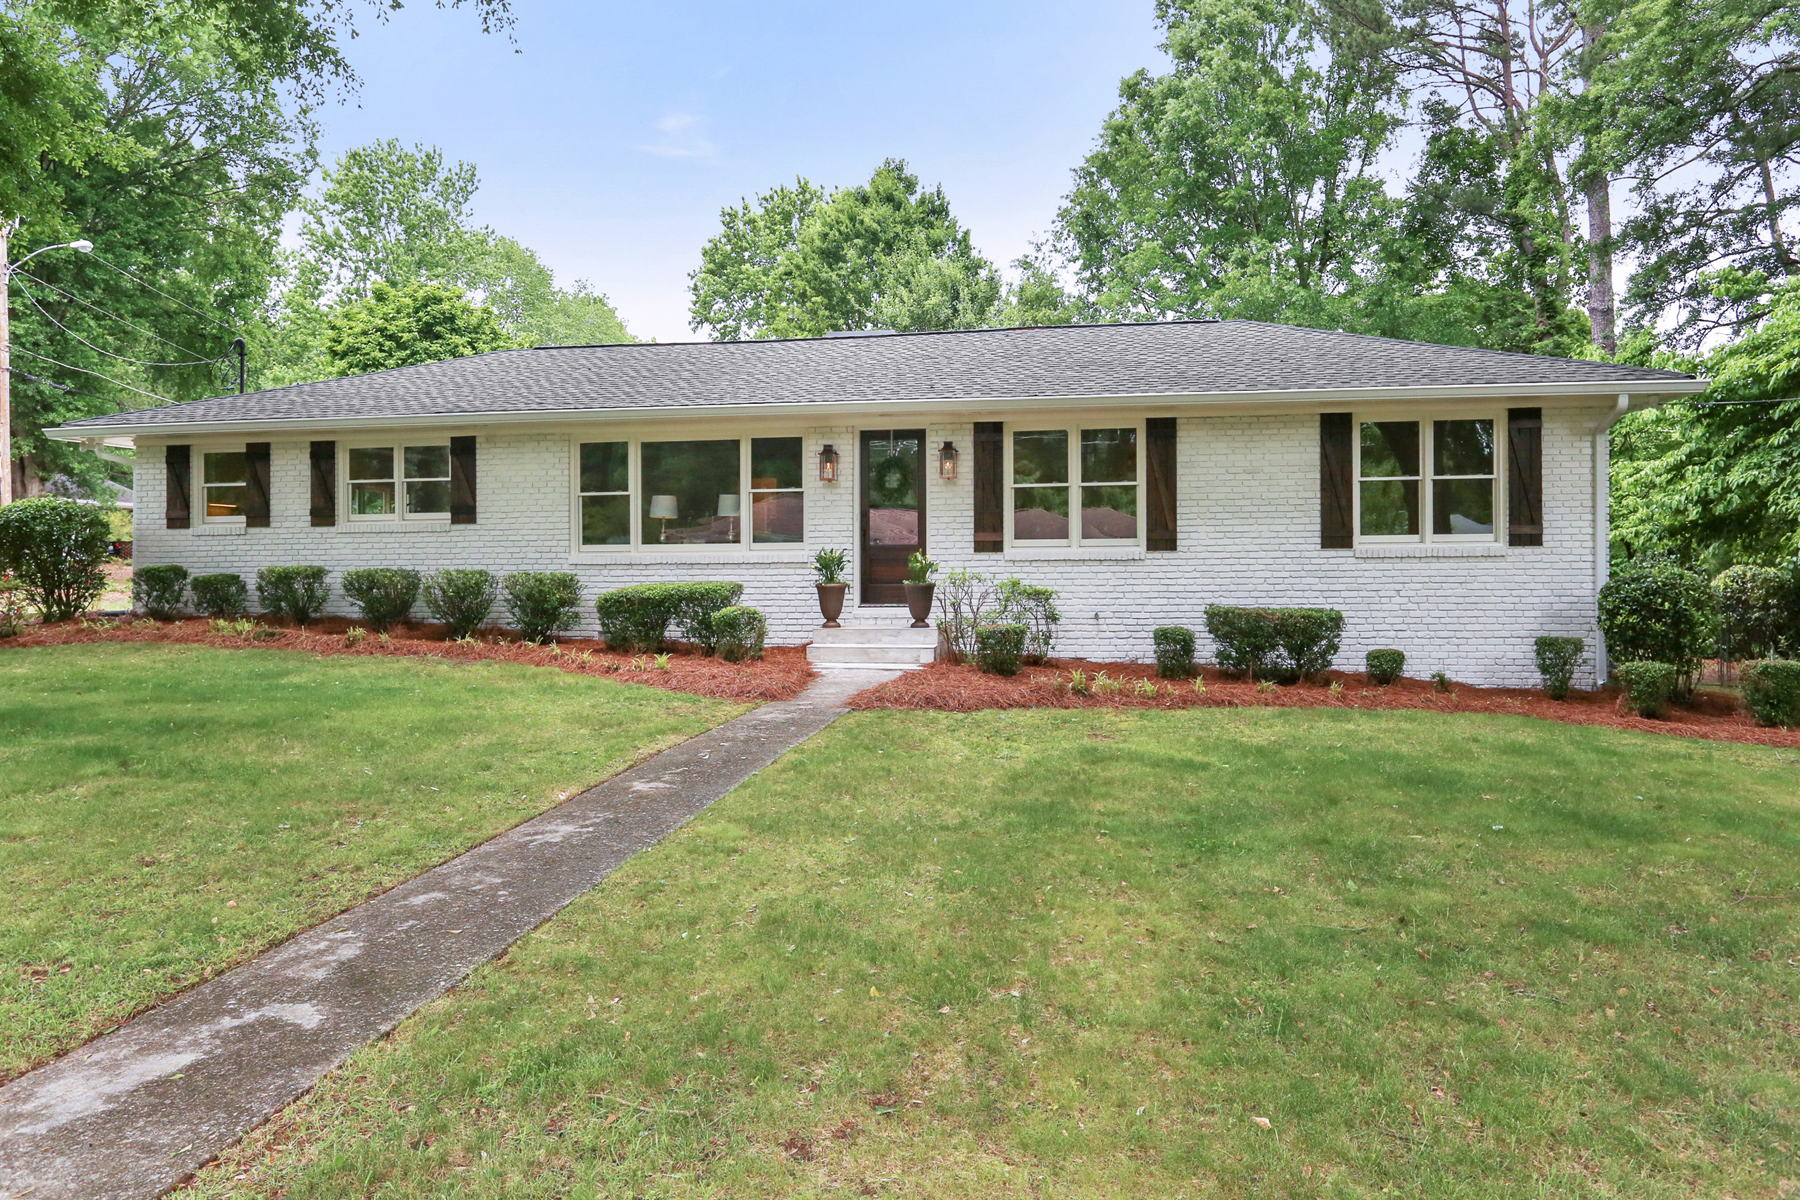 Single Family Home for Sale at Complete Renovation In Downtown Alpharetta 245 Meadow Dr Alpharetta, Georgia 30009 United States